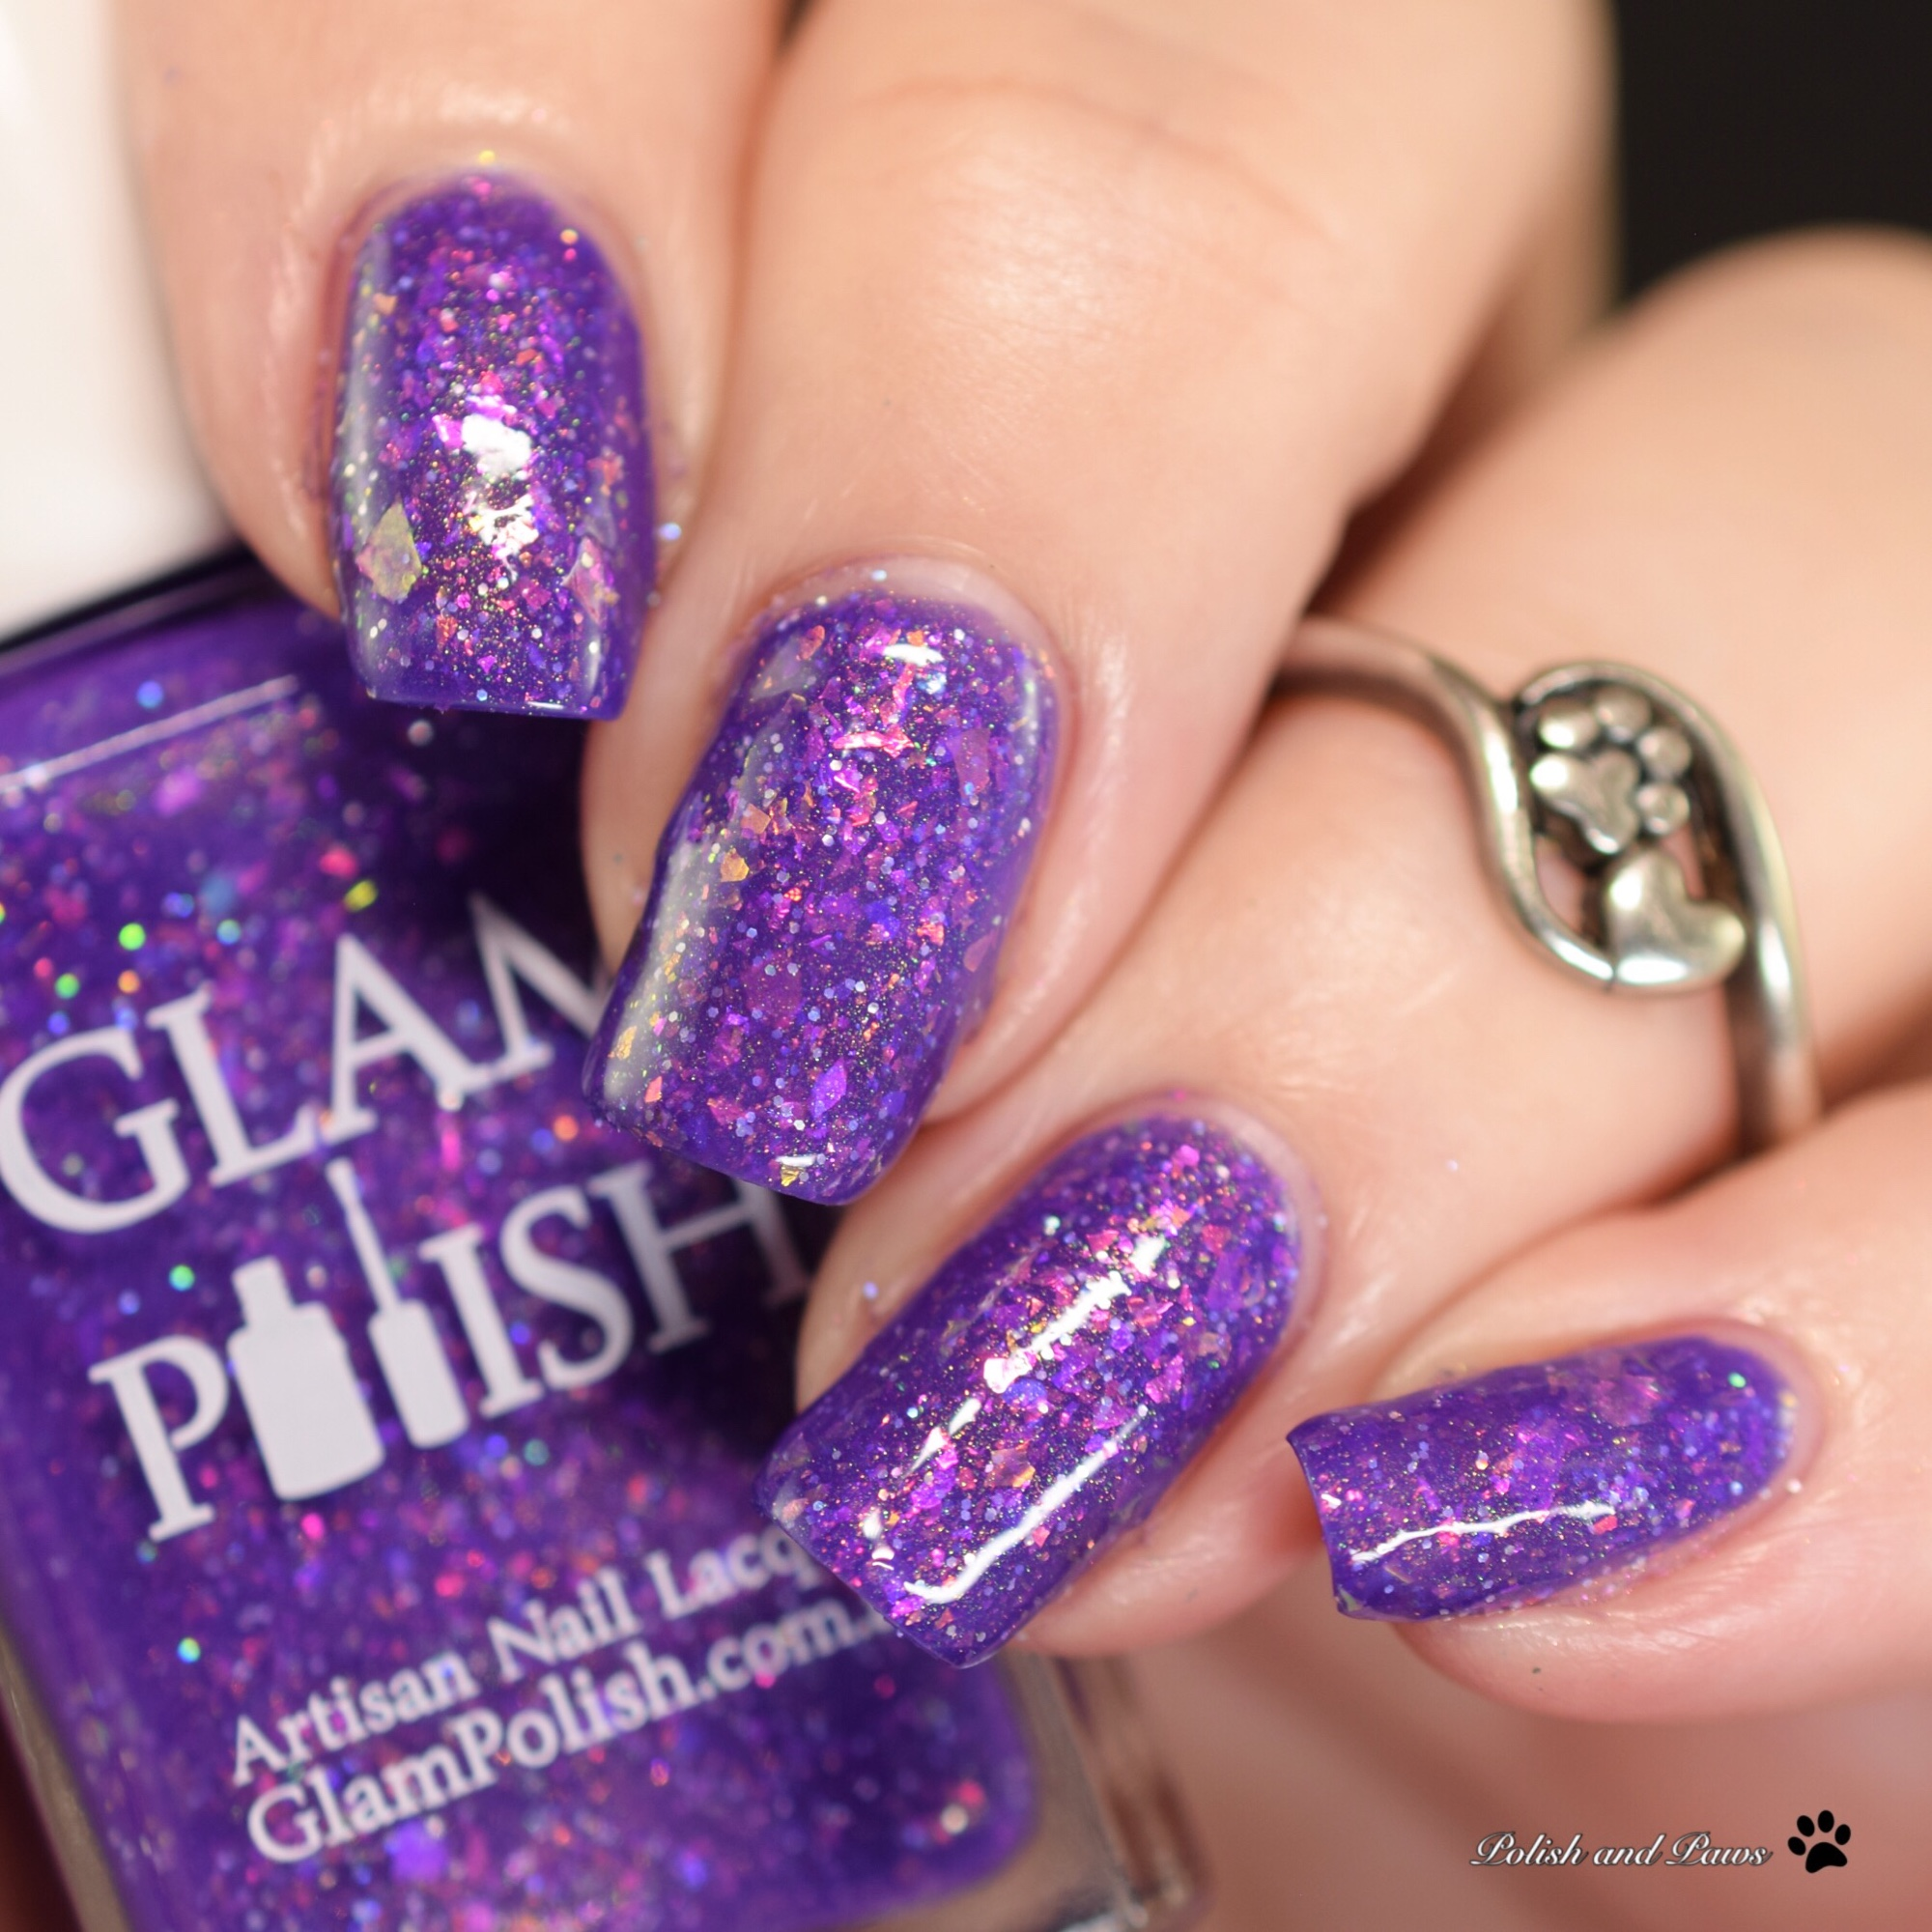 Glam Polish Go On Have a Bite